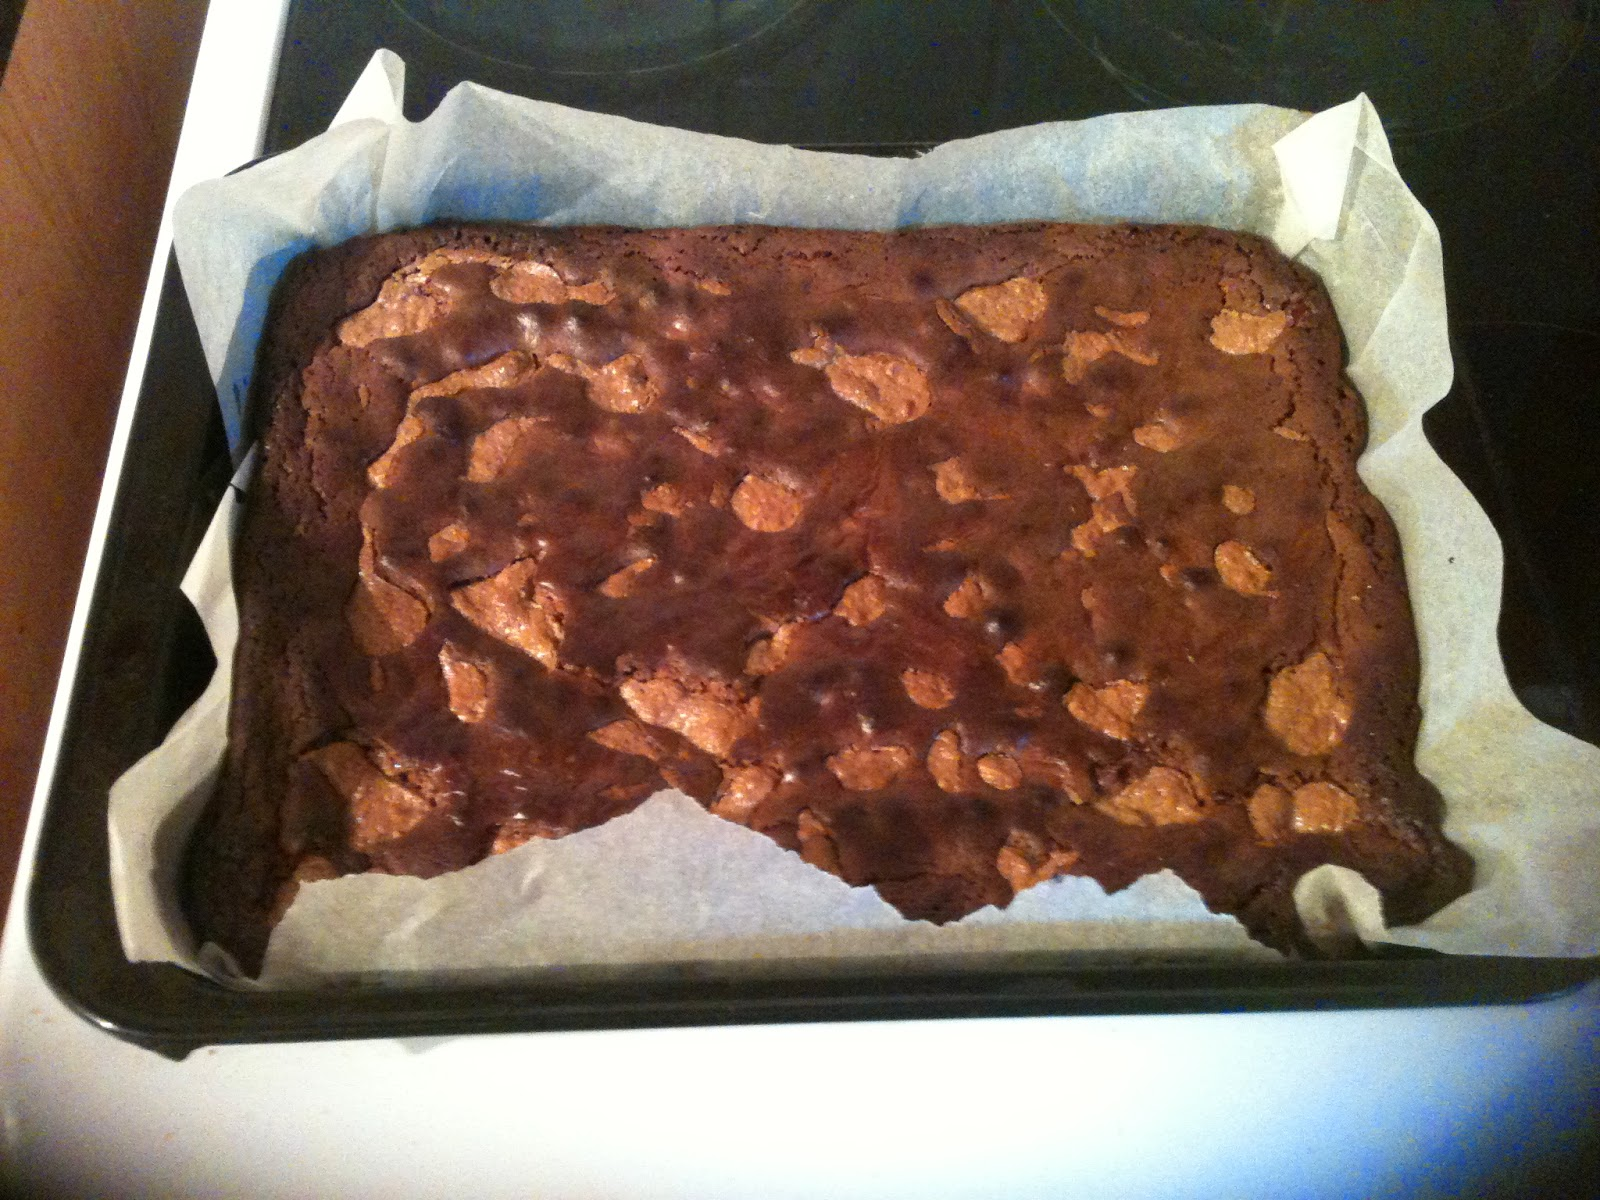 Slab of peanut butter and chocolate brownie just from the oven